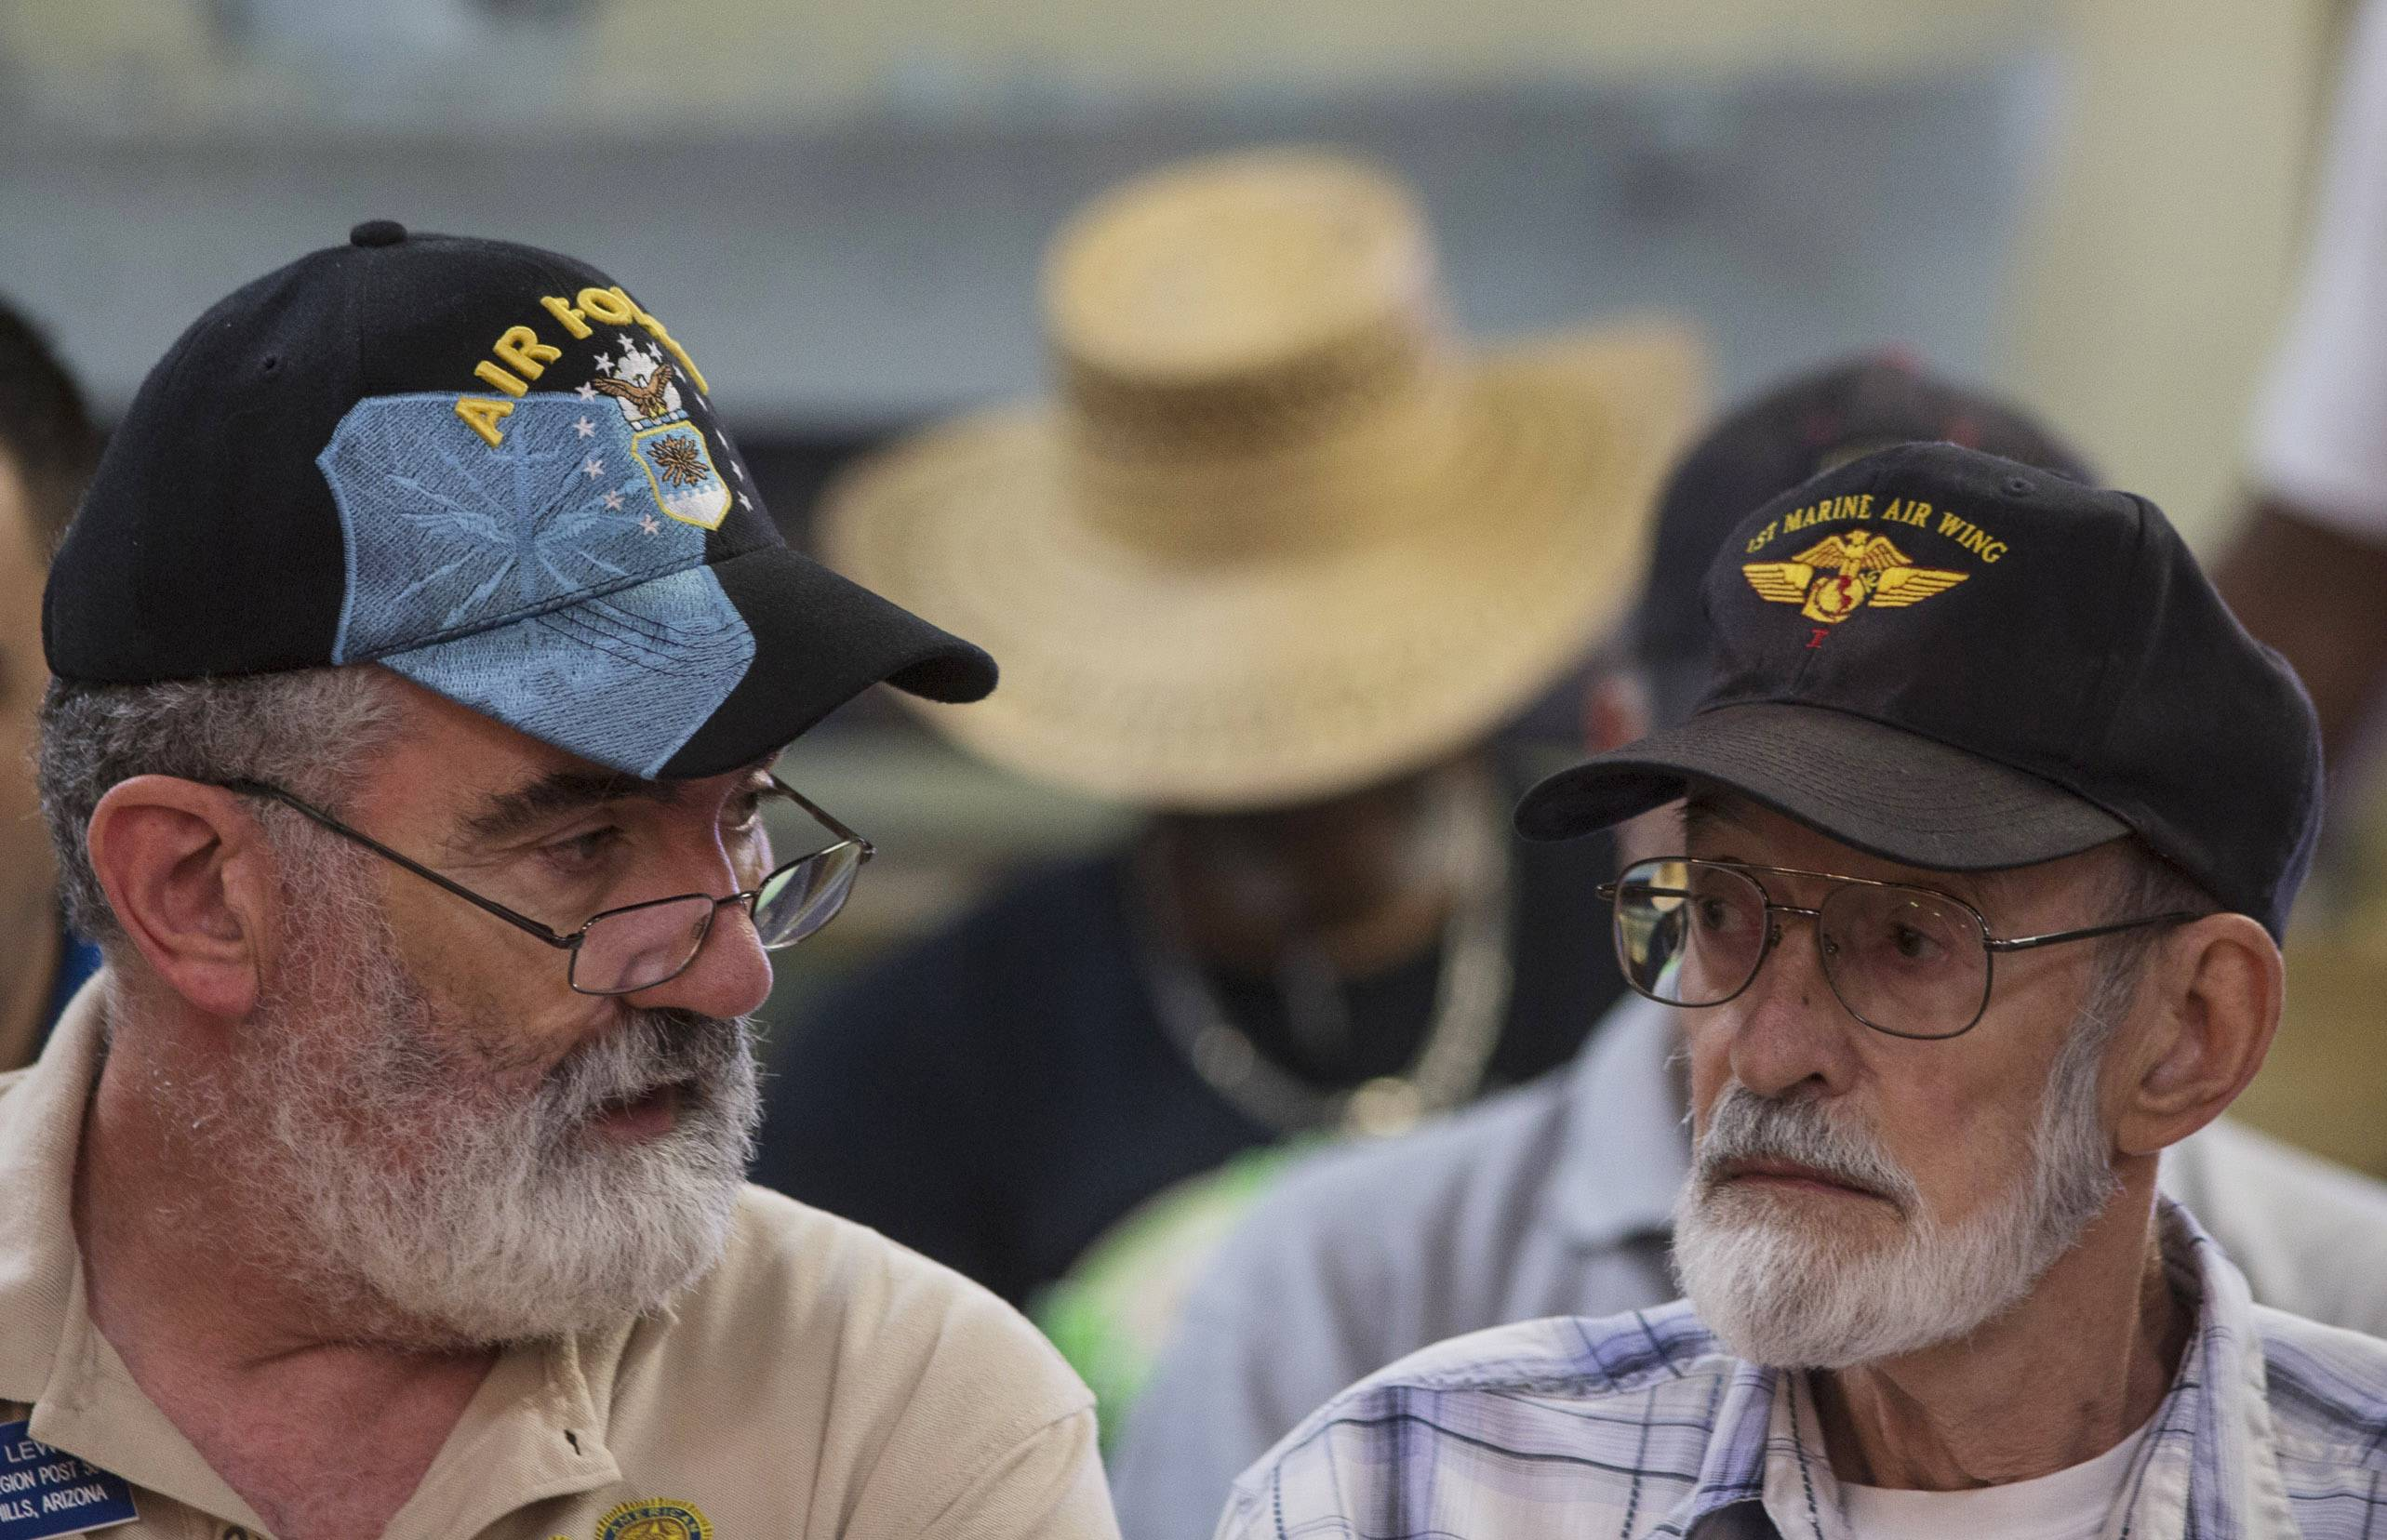 Vietnam veteran Gene Stoesser, right, talks with Veterans Crisis Command Center volunteer Chuck Lewis, left, while he waits for an appointment Tuesday, June 10, 2014, at American Legion Post 1 in Phoenix.